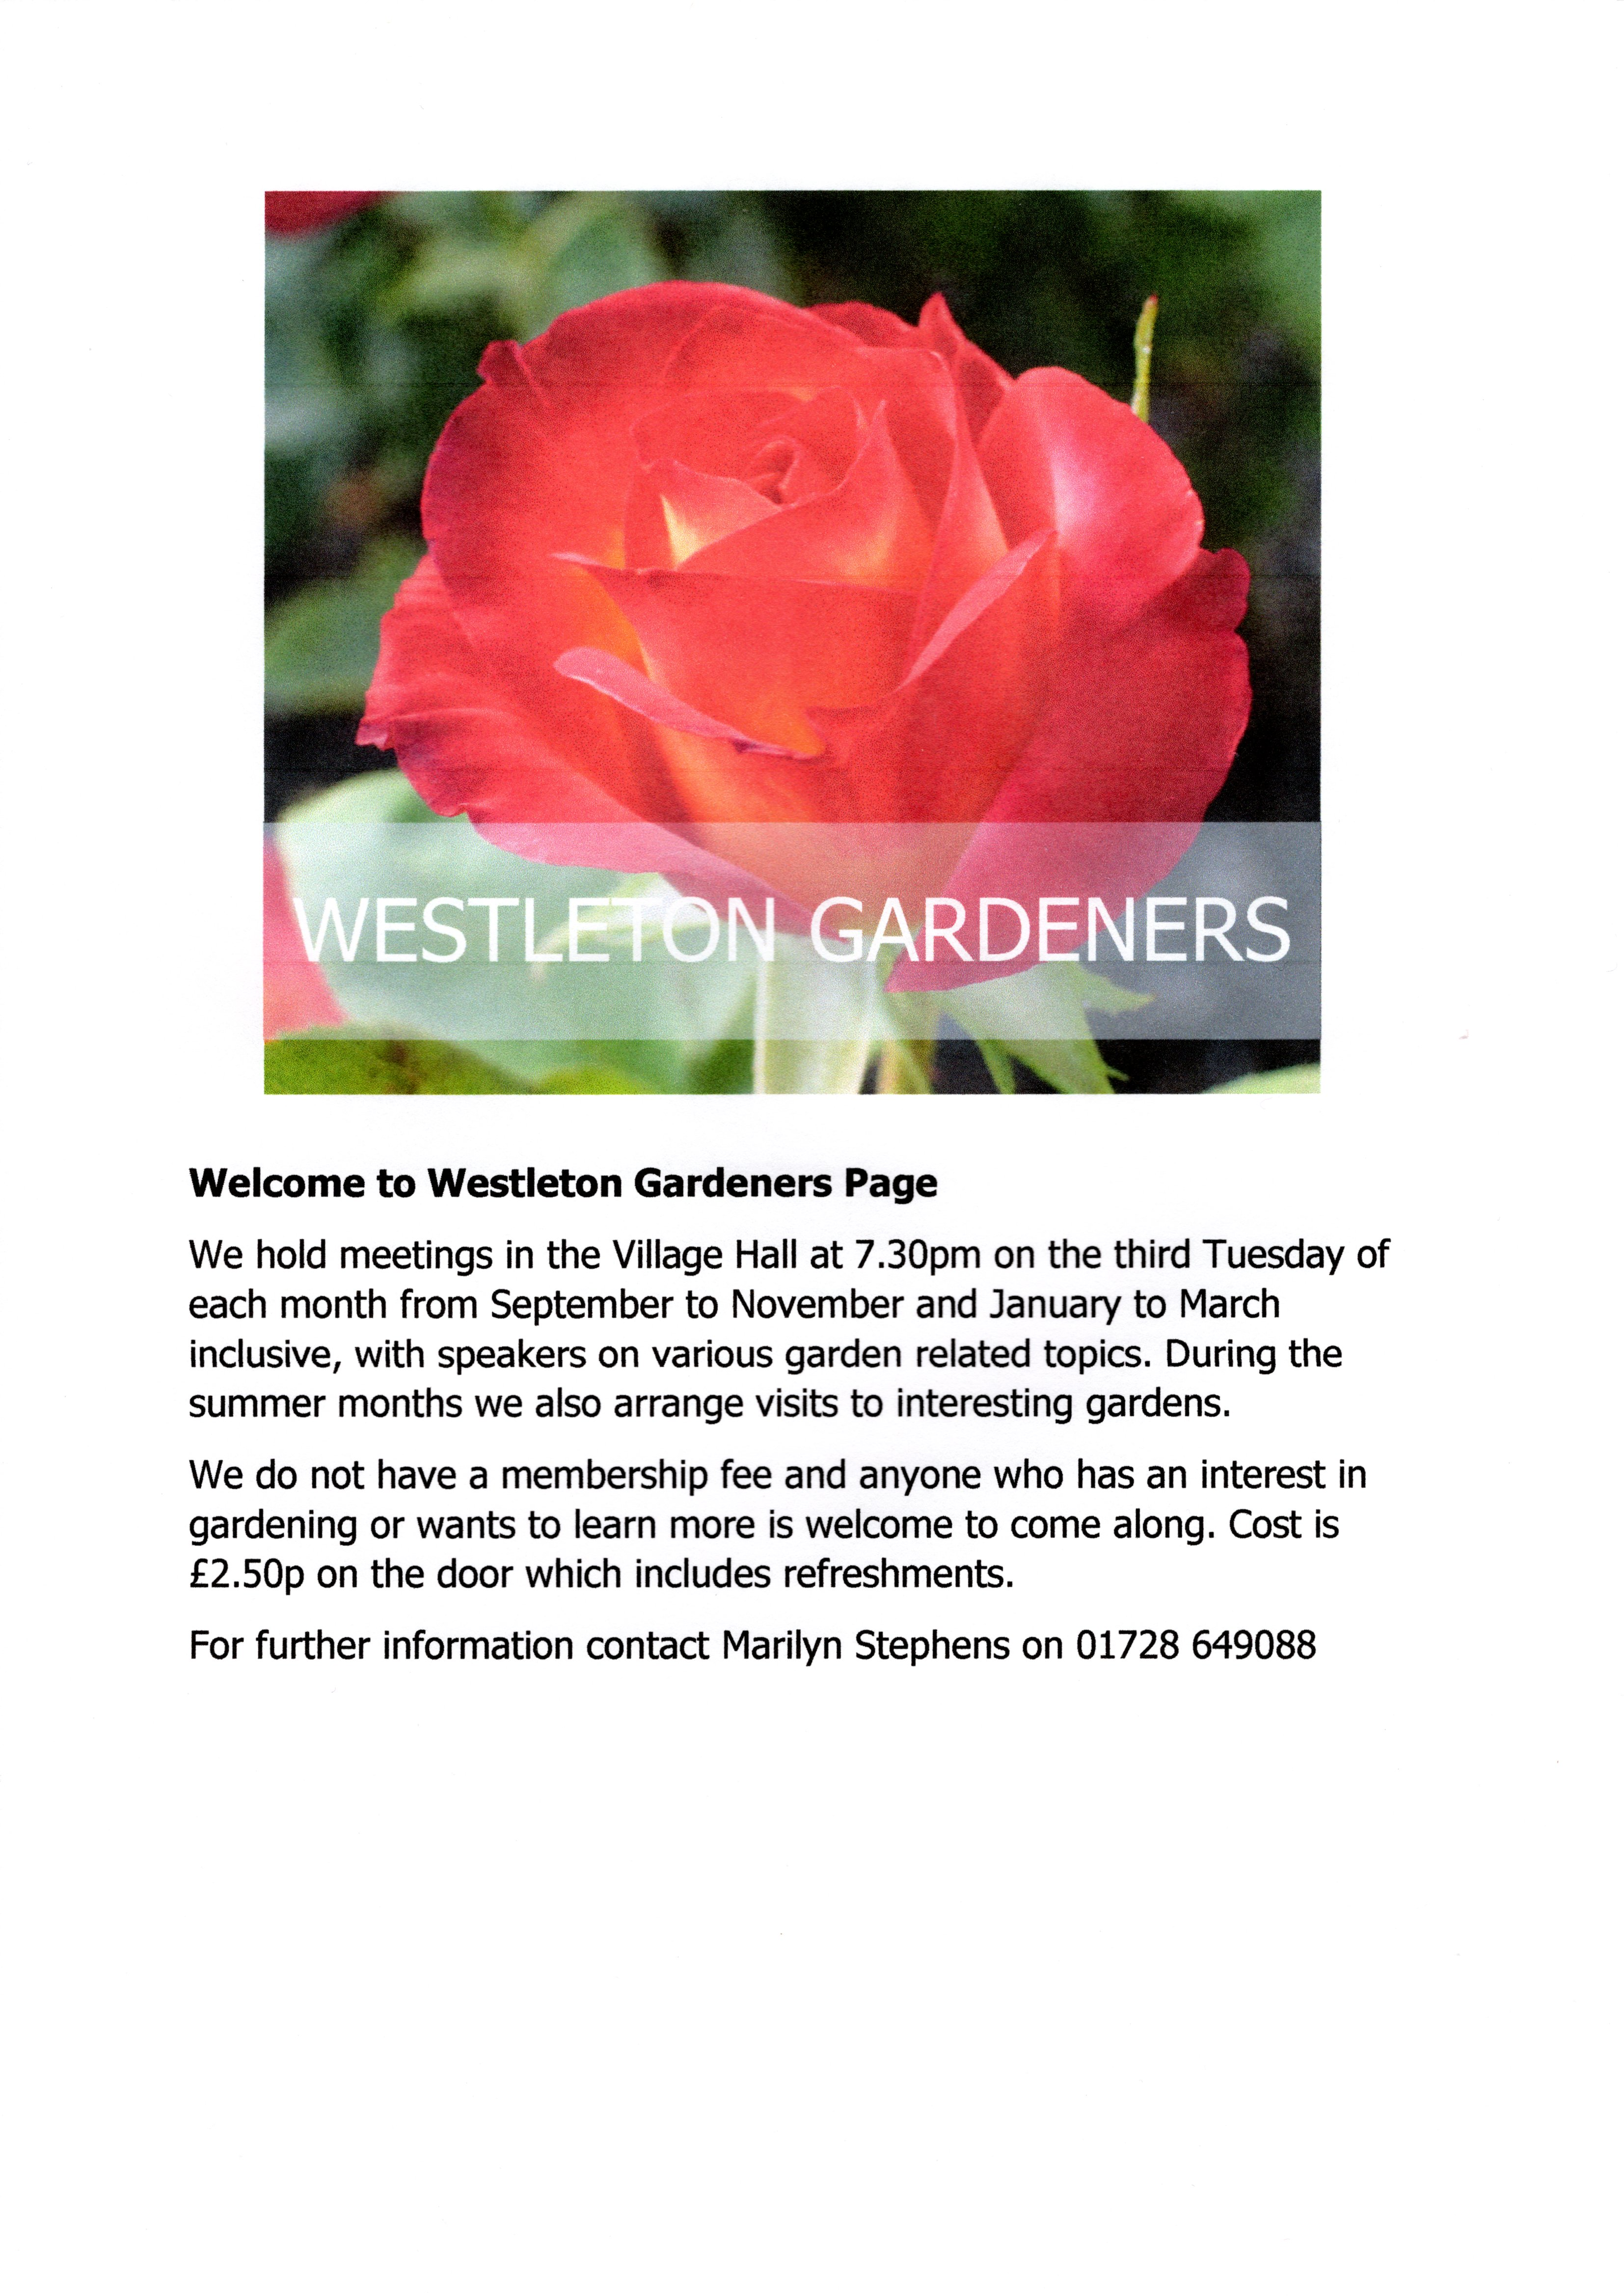 Welcome to Westleton Gardeners Page We hold meetings in the Village Hall at 7.30pm on the third Tuesday of each month from September to November and January to March inclusive, with speakers on various garden related topics. During the summer months we also arrange visits to interesting gardens. We do not have a membership fee and anyone who has an interest in gardening or wants to learn more is welcome to come along. Cost is £2.50p on the door which includes refreshments. For further information contact Marilyn Stephens on 01728 649088